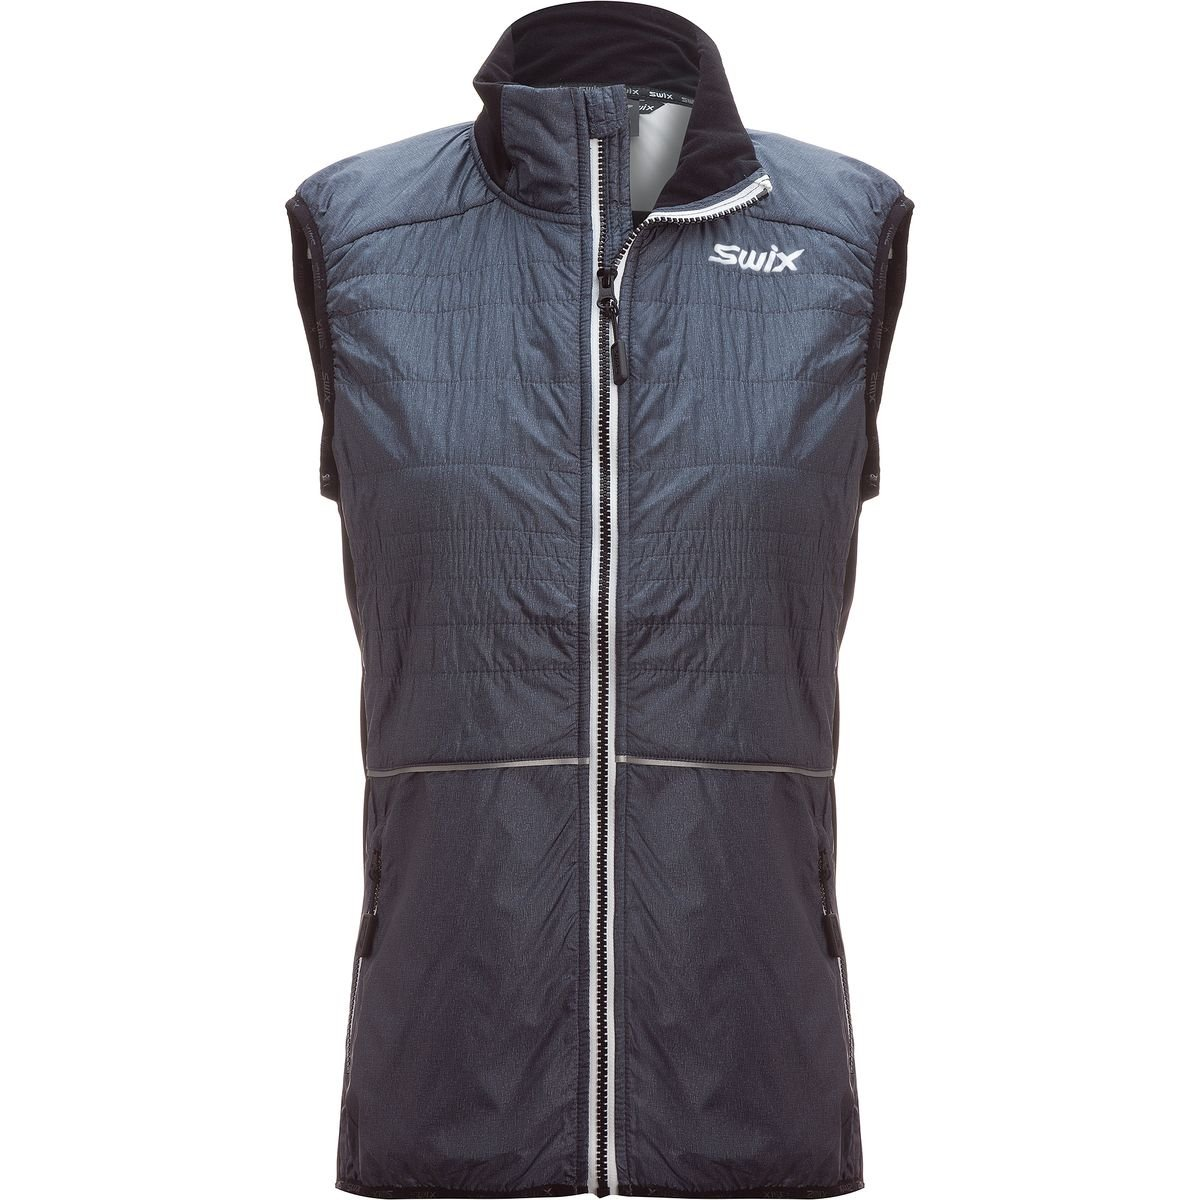 Swix Menali 2 Quilted Vest - Women's Heather/Charcoal, S